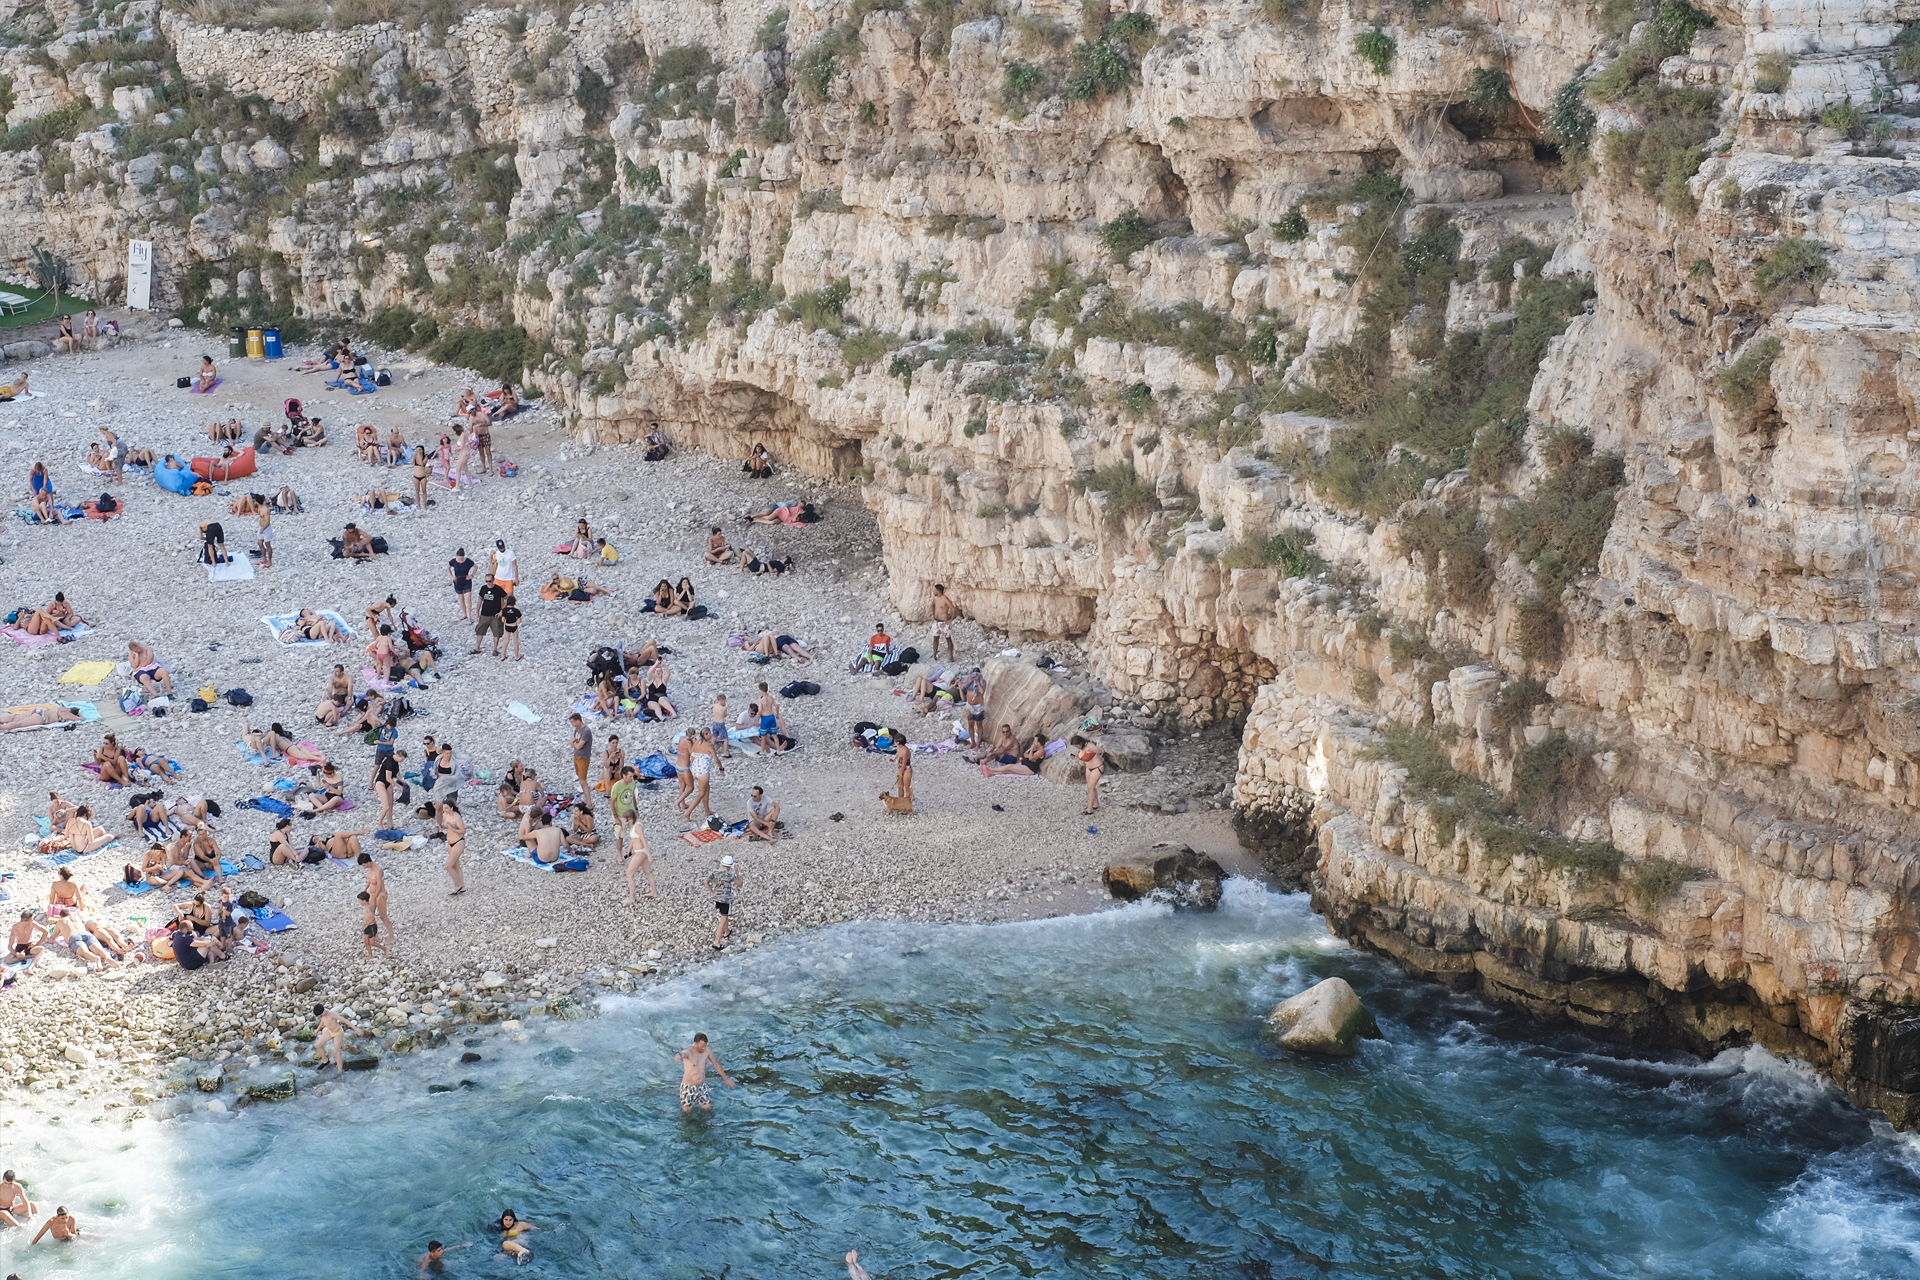 A glimpse of Puglia, Cala Porto full of people